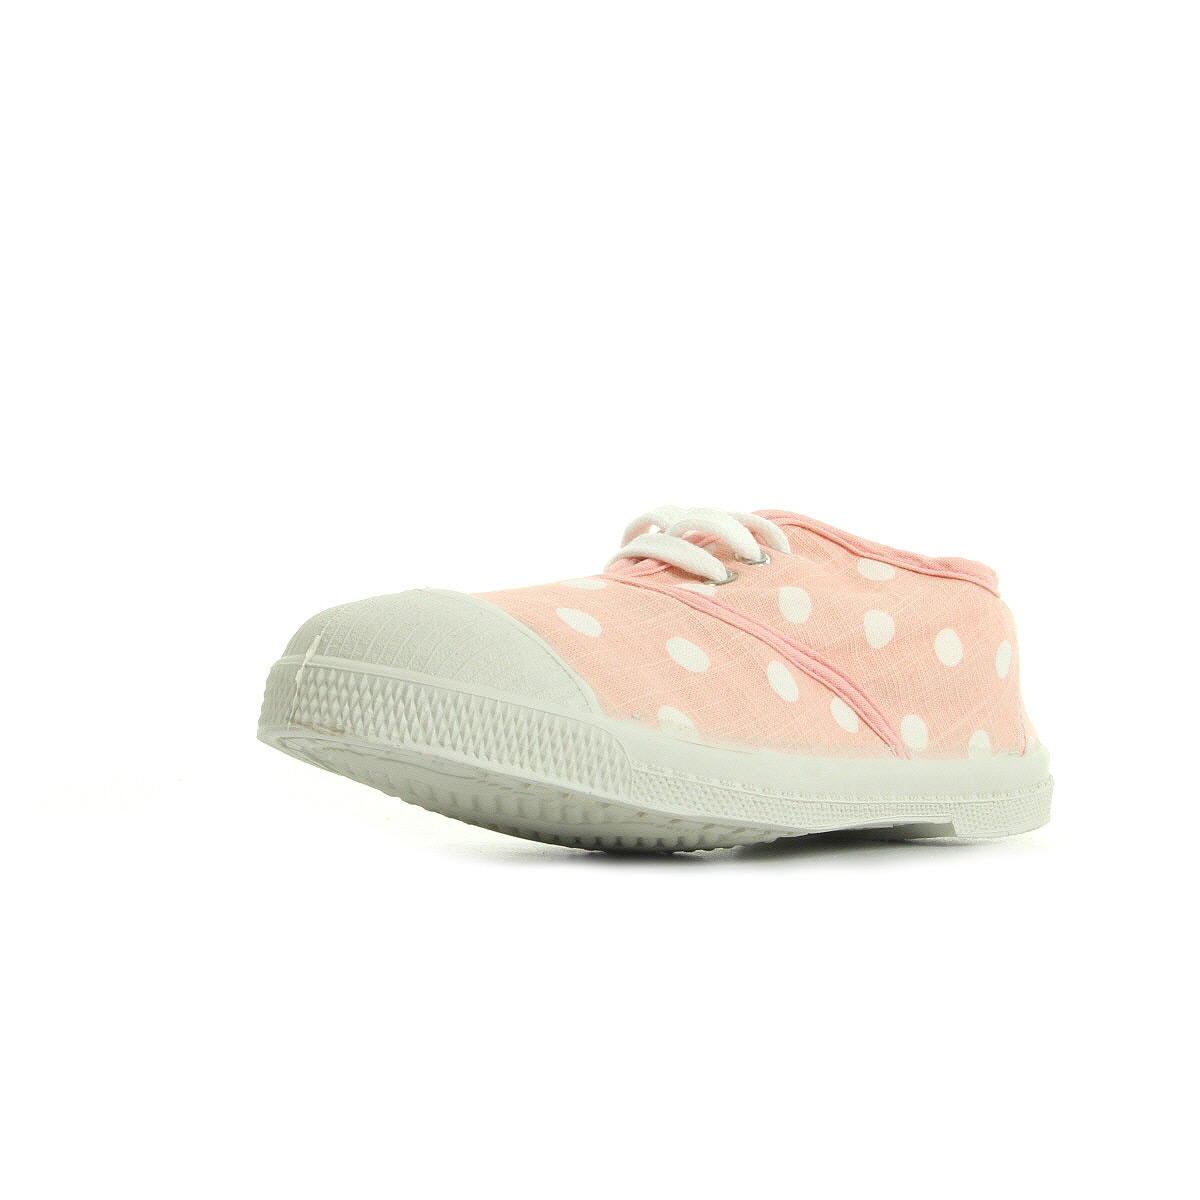 Baskets Bensimon Ten Lacet Pastel Pastille Rose 36o2I3l31